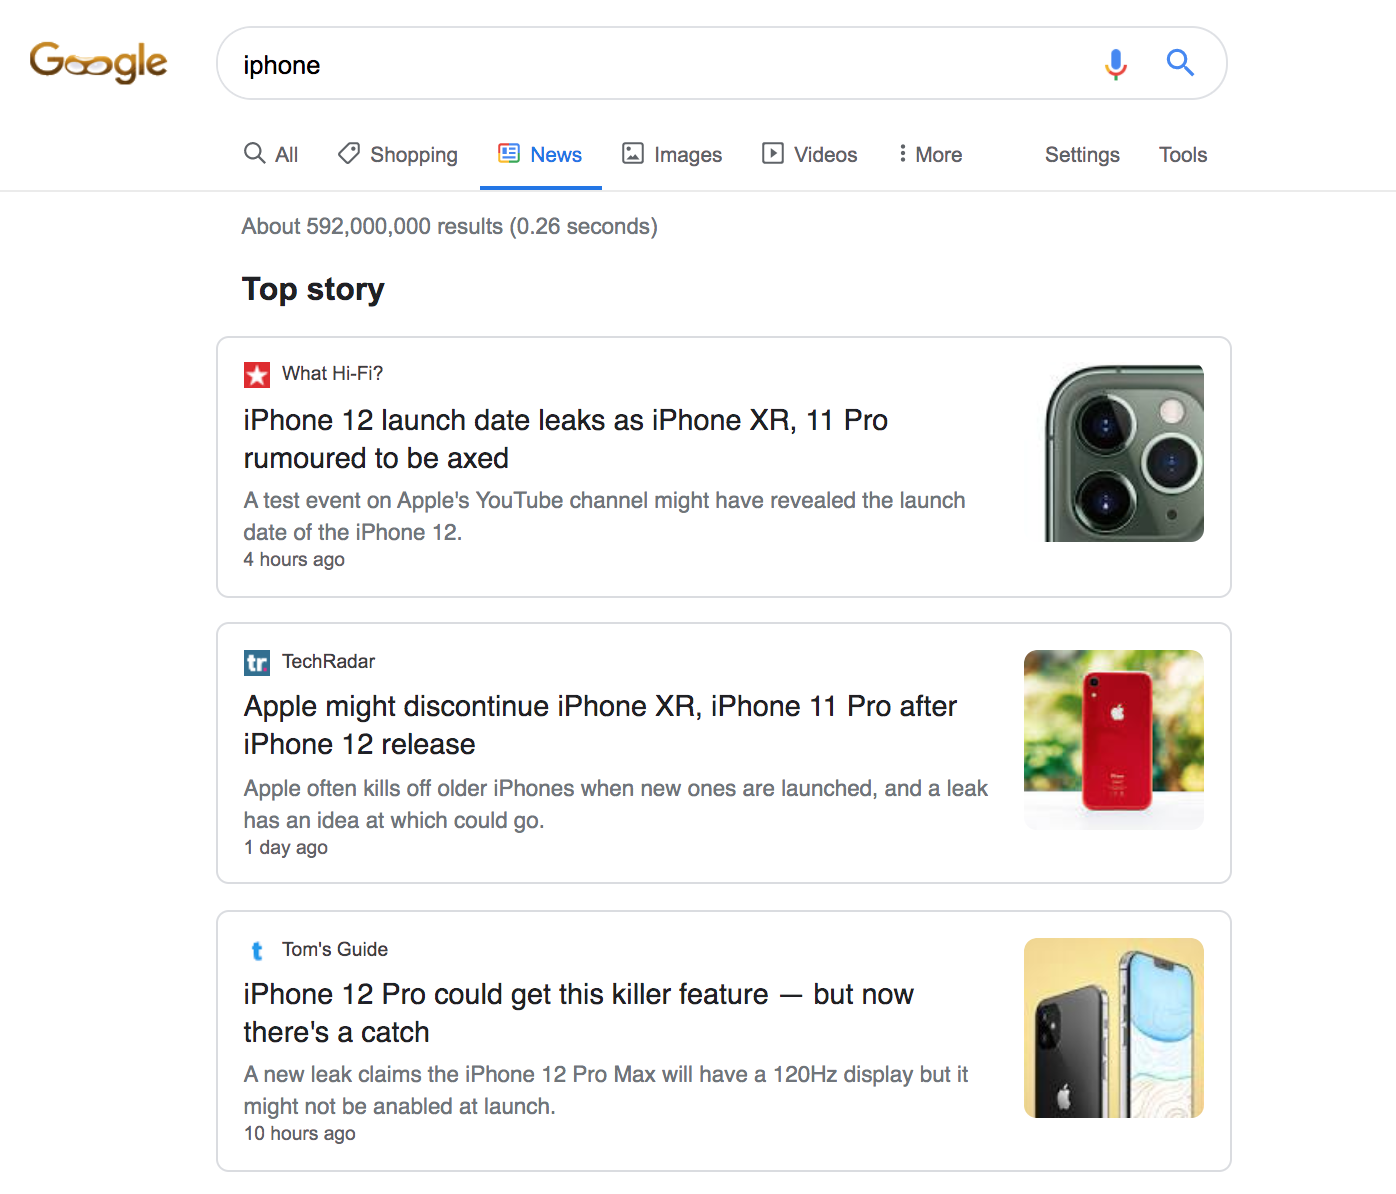 screenshot google search engine top story results freshness factor